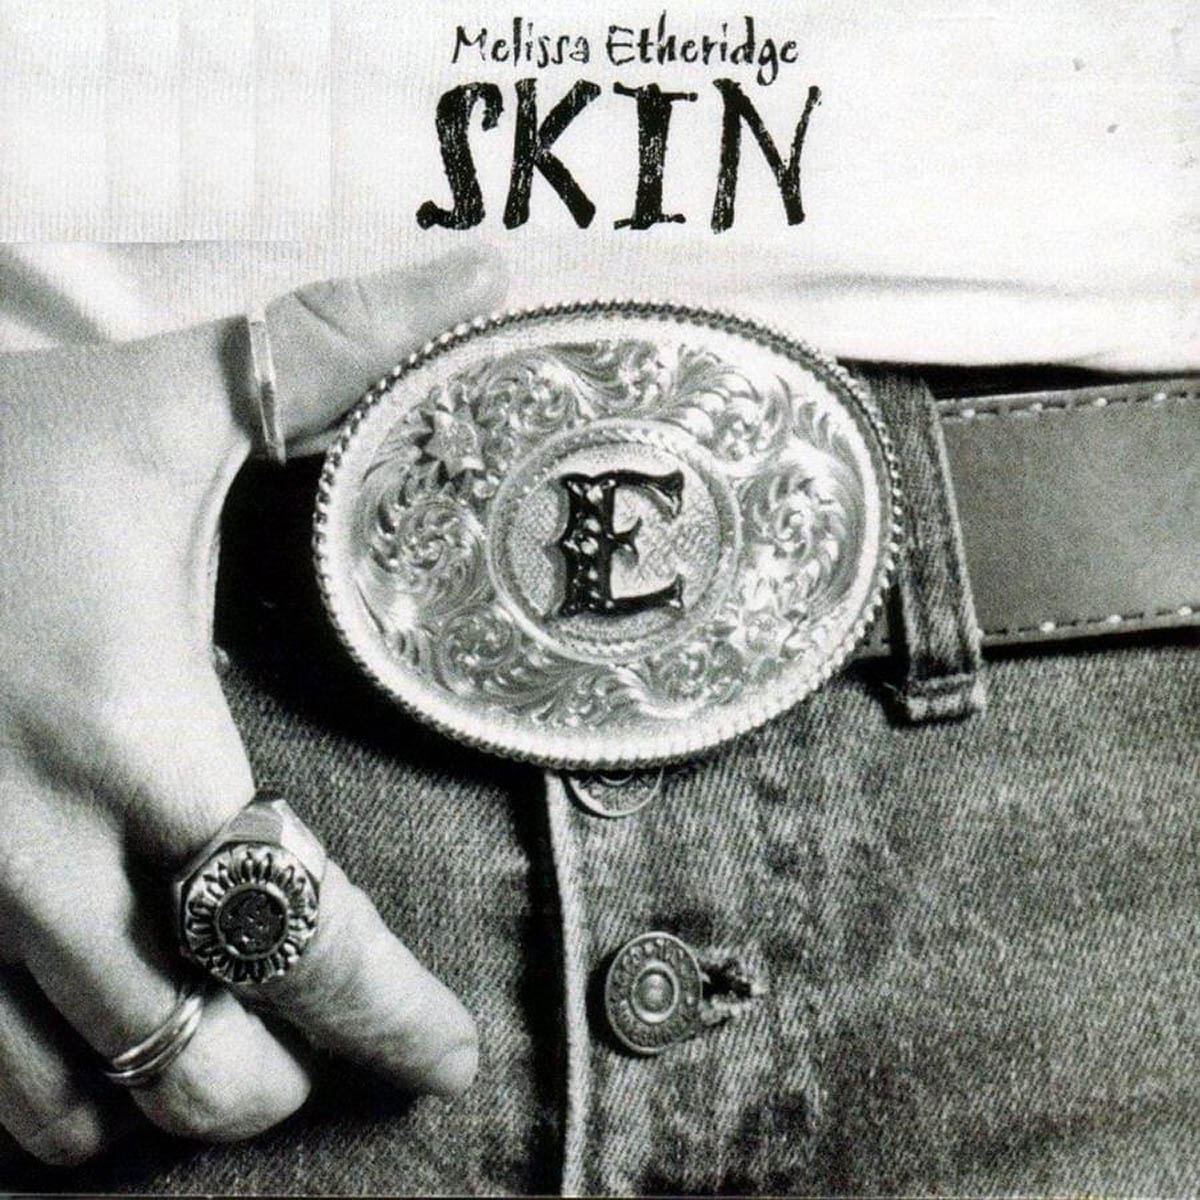 Melissa Etheridge, Skin